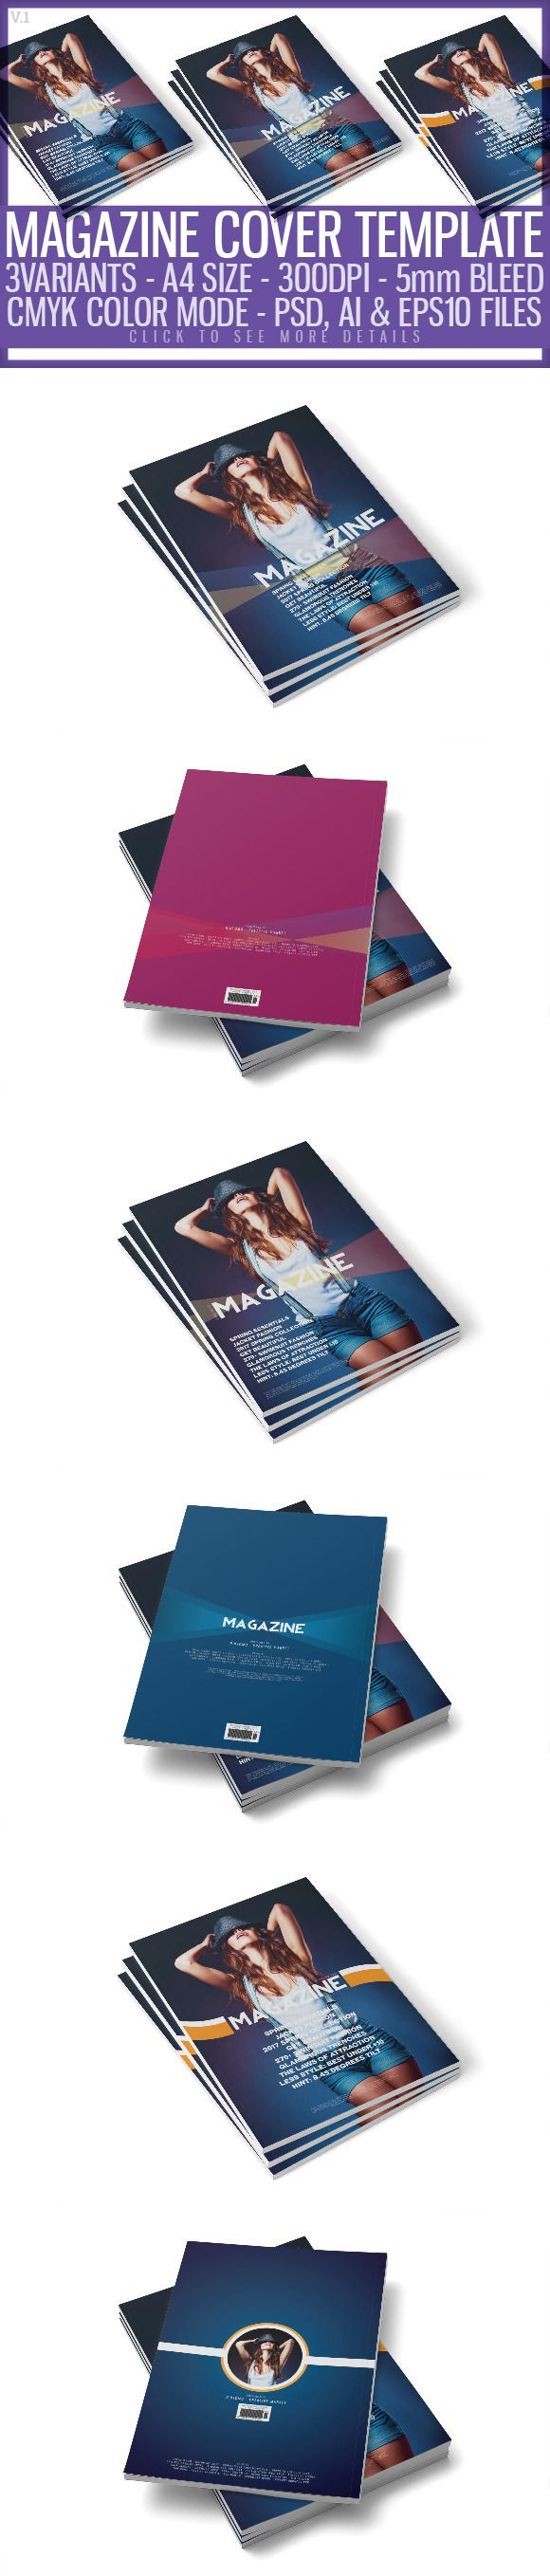 Magazine Cover Template 9 by @Graphicsauthor